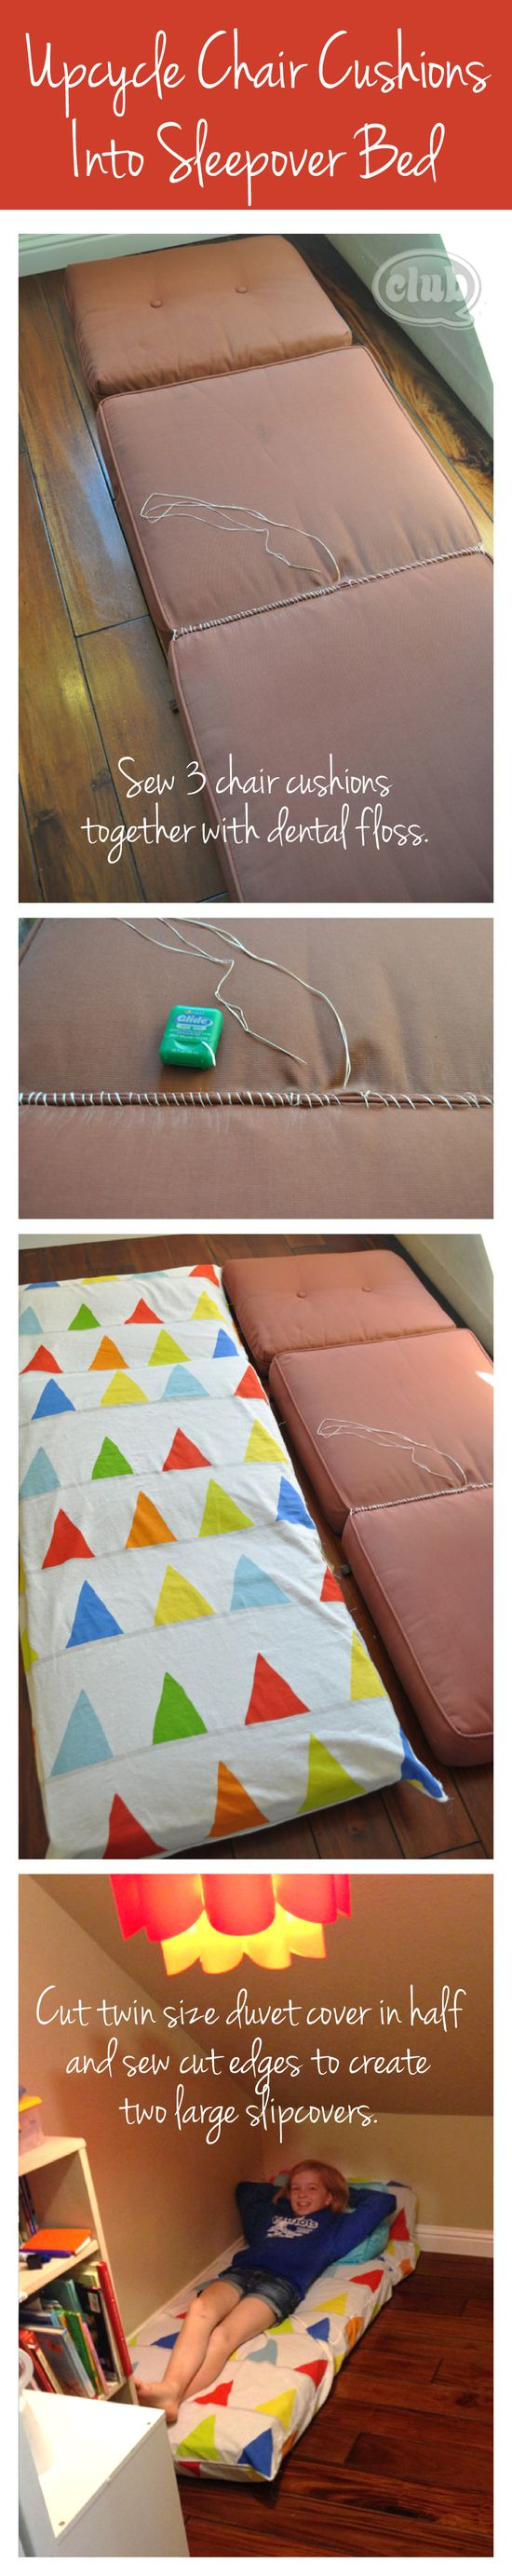 Upcycle outdoor chair cushions into sleeping pads DIY